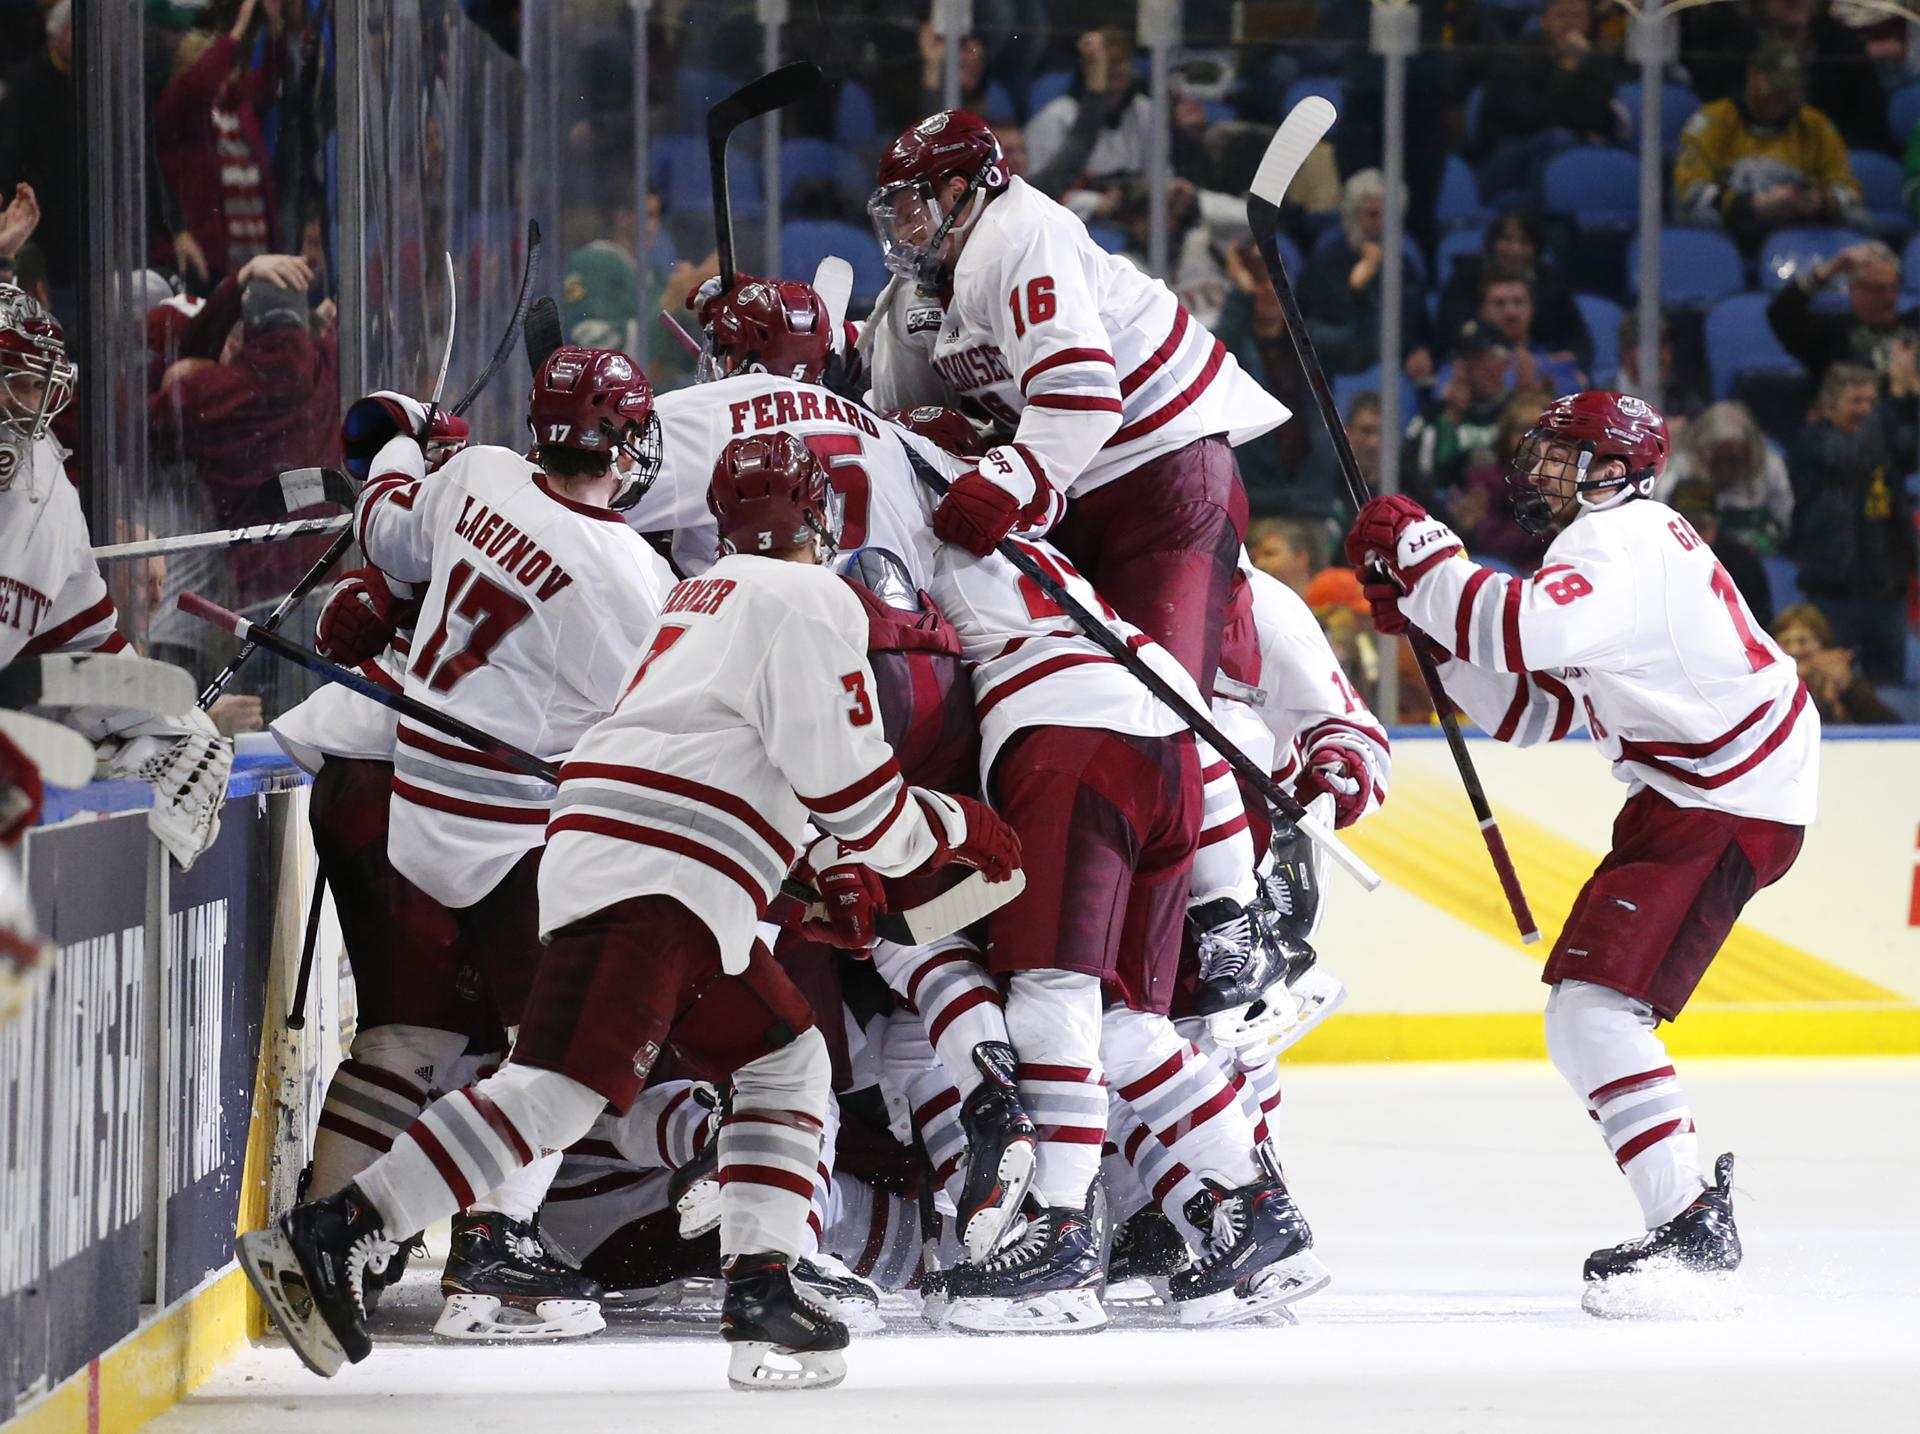 Massachusetts players celebrate a 4-3 overtime victory over Denver in the semifinals of the Frozen Four NCAA men's college hockey tournament Thursday, April 11, 2019, in Buffalo, N.Y. (AP Photo/Jeffrey T. Barnes)